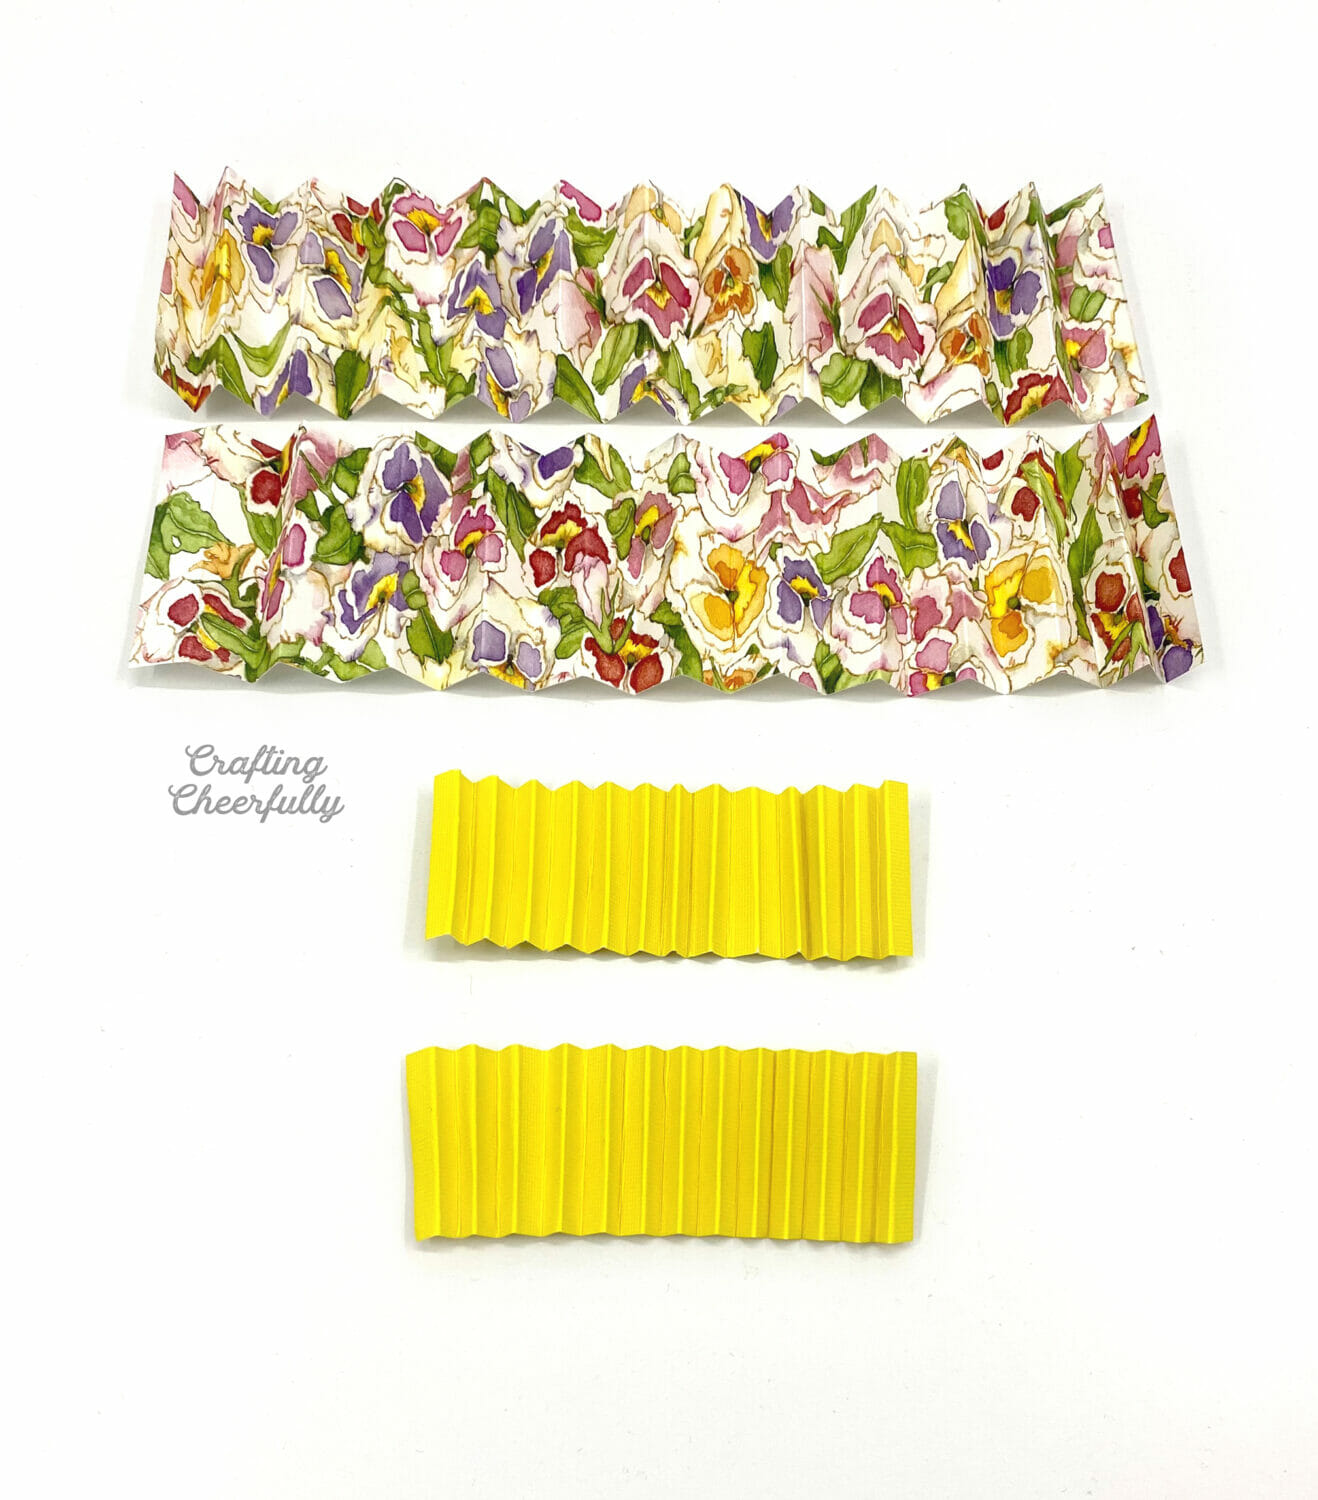 Strips of accordion folded paper lay on a table. One is larger and floral, the other is smaller and yellow.